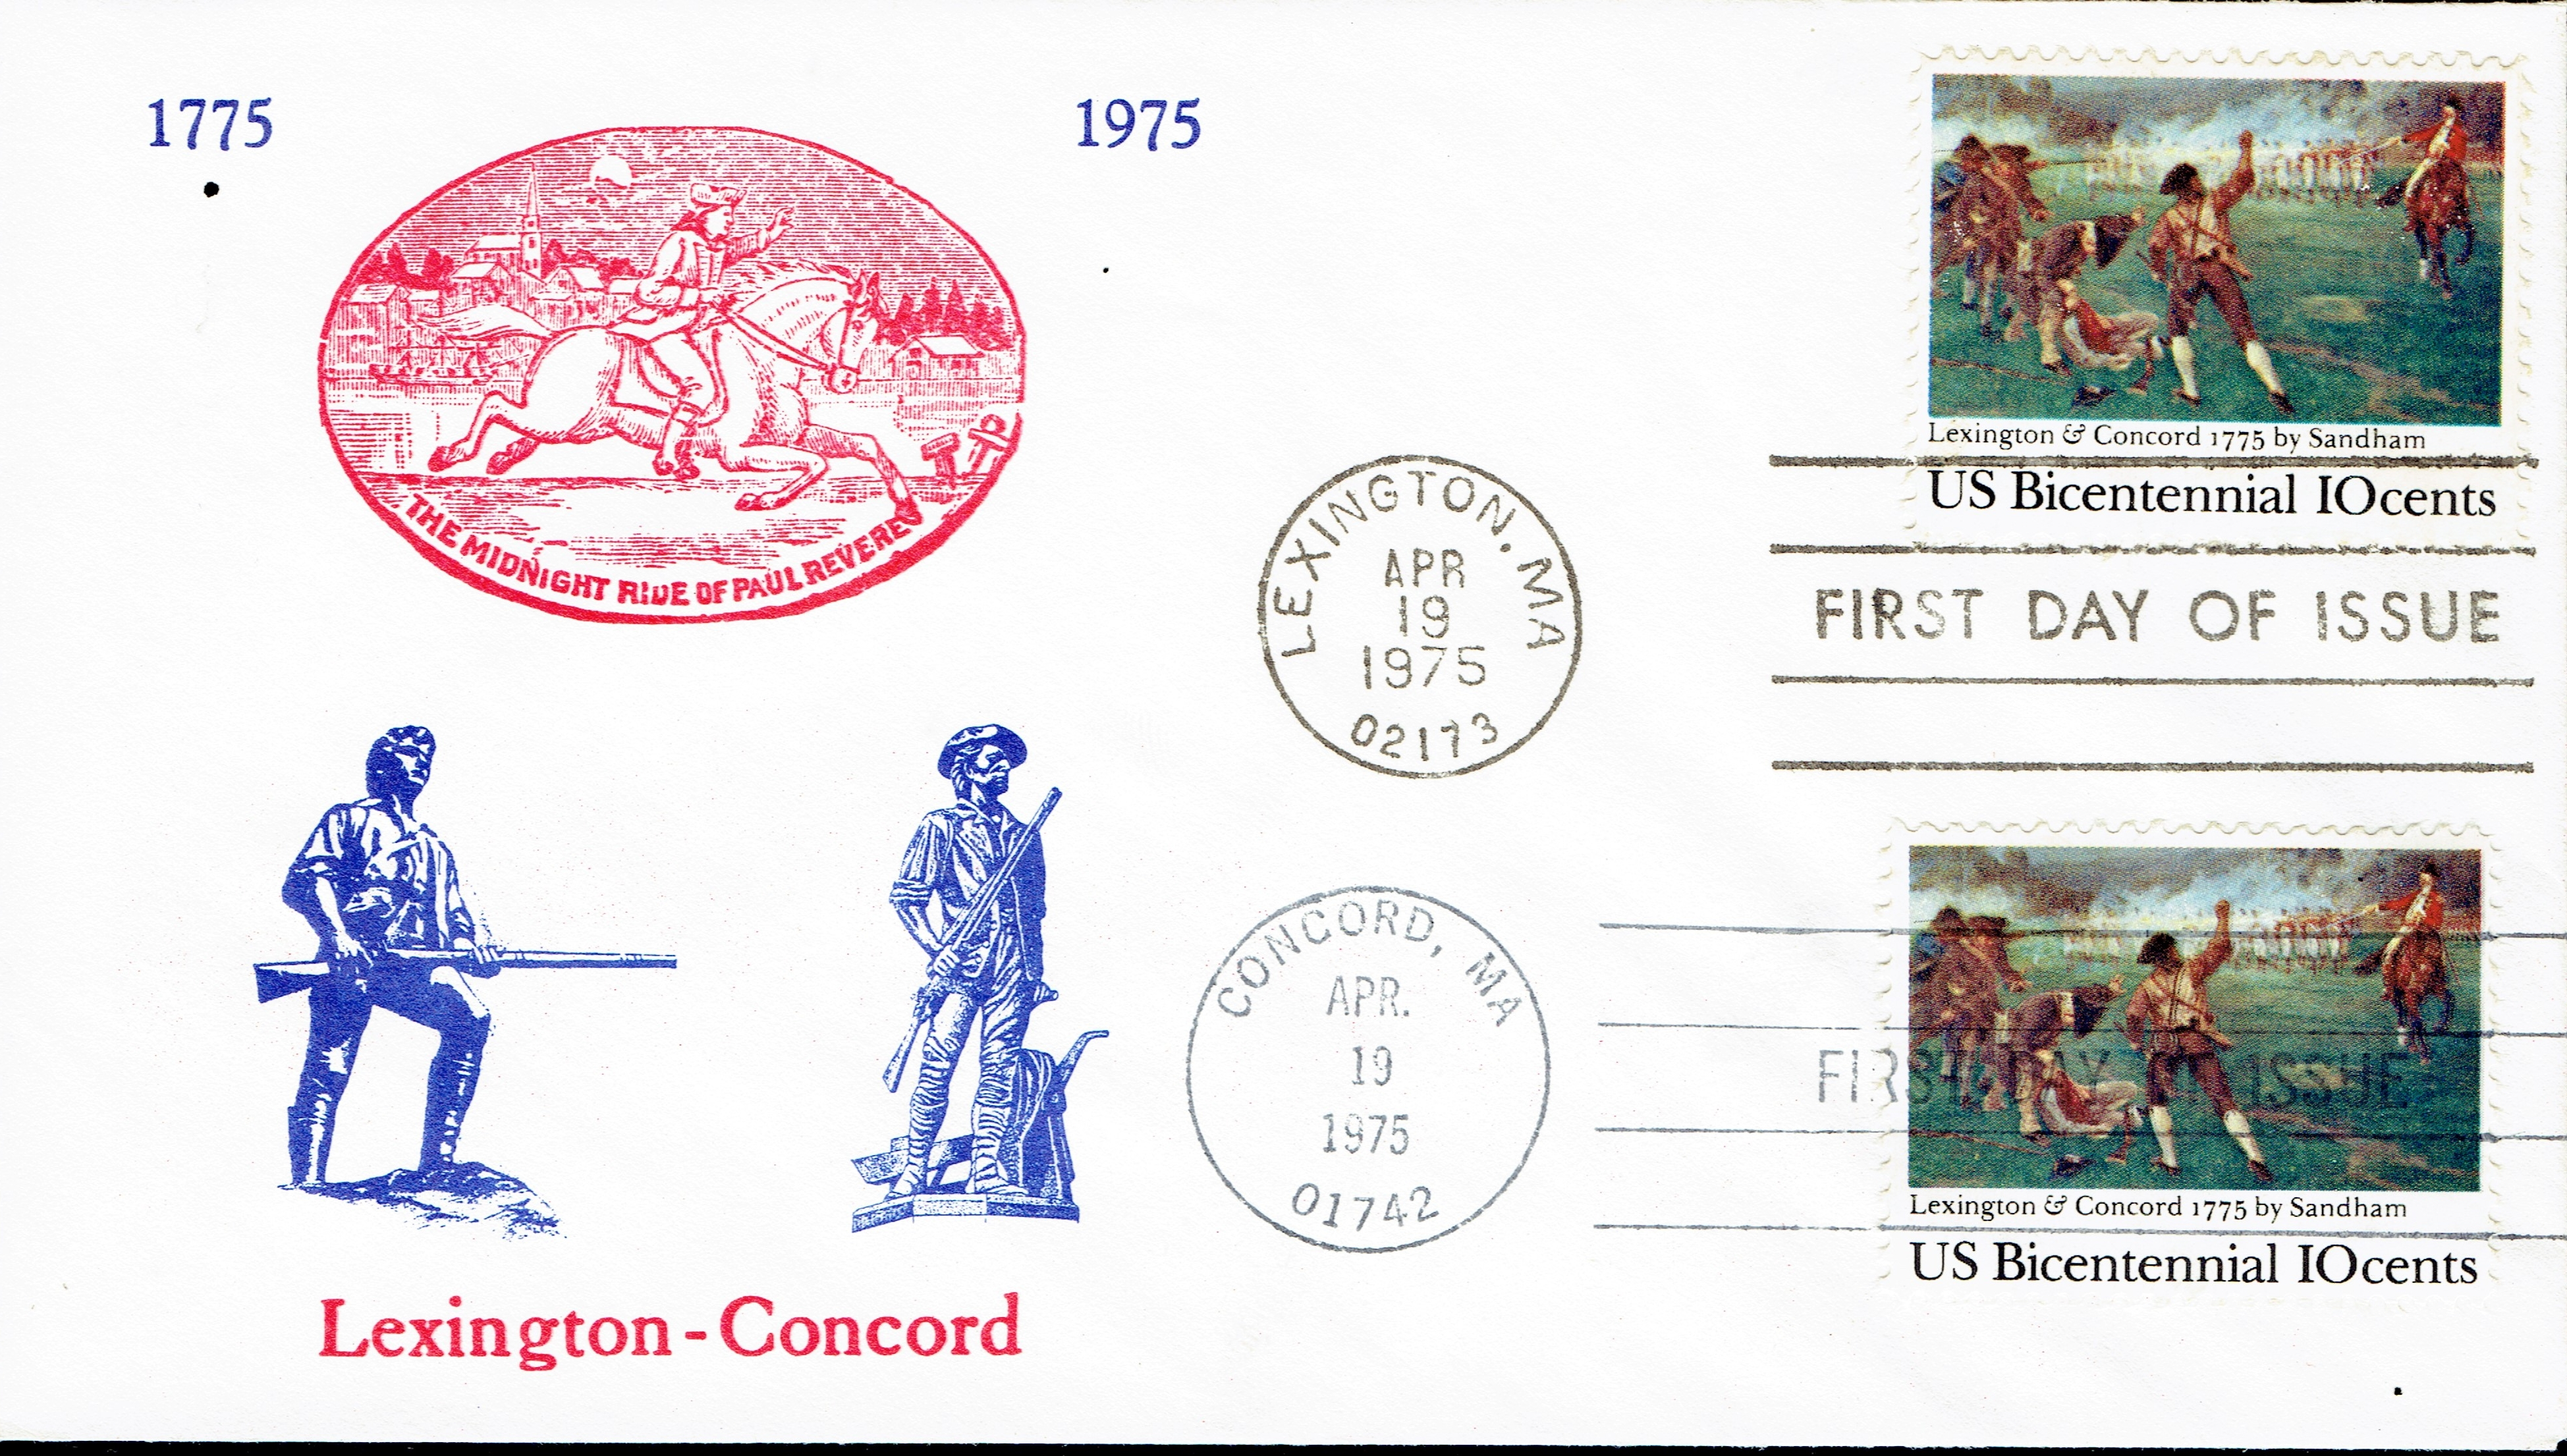 United States - Scott #1563 (1975) - first day cover with cancellations from Lexington and Concord, Massachusetts